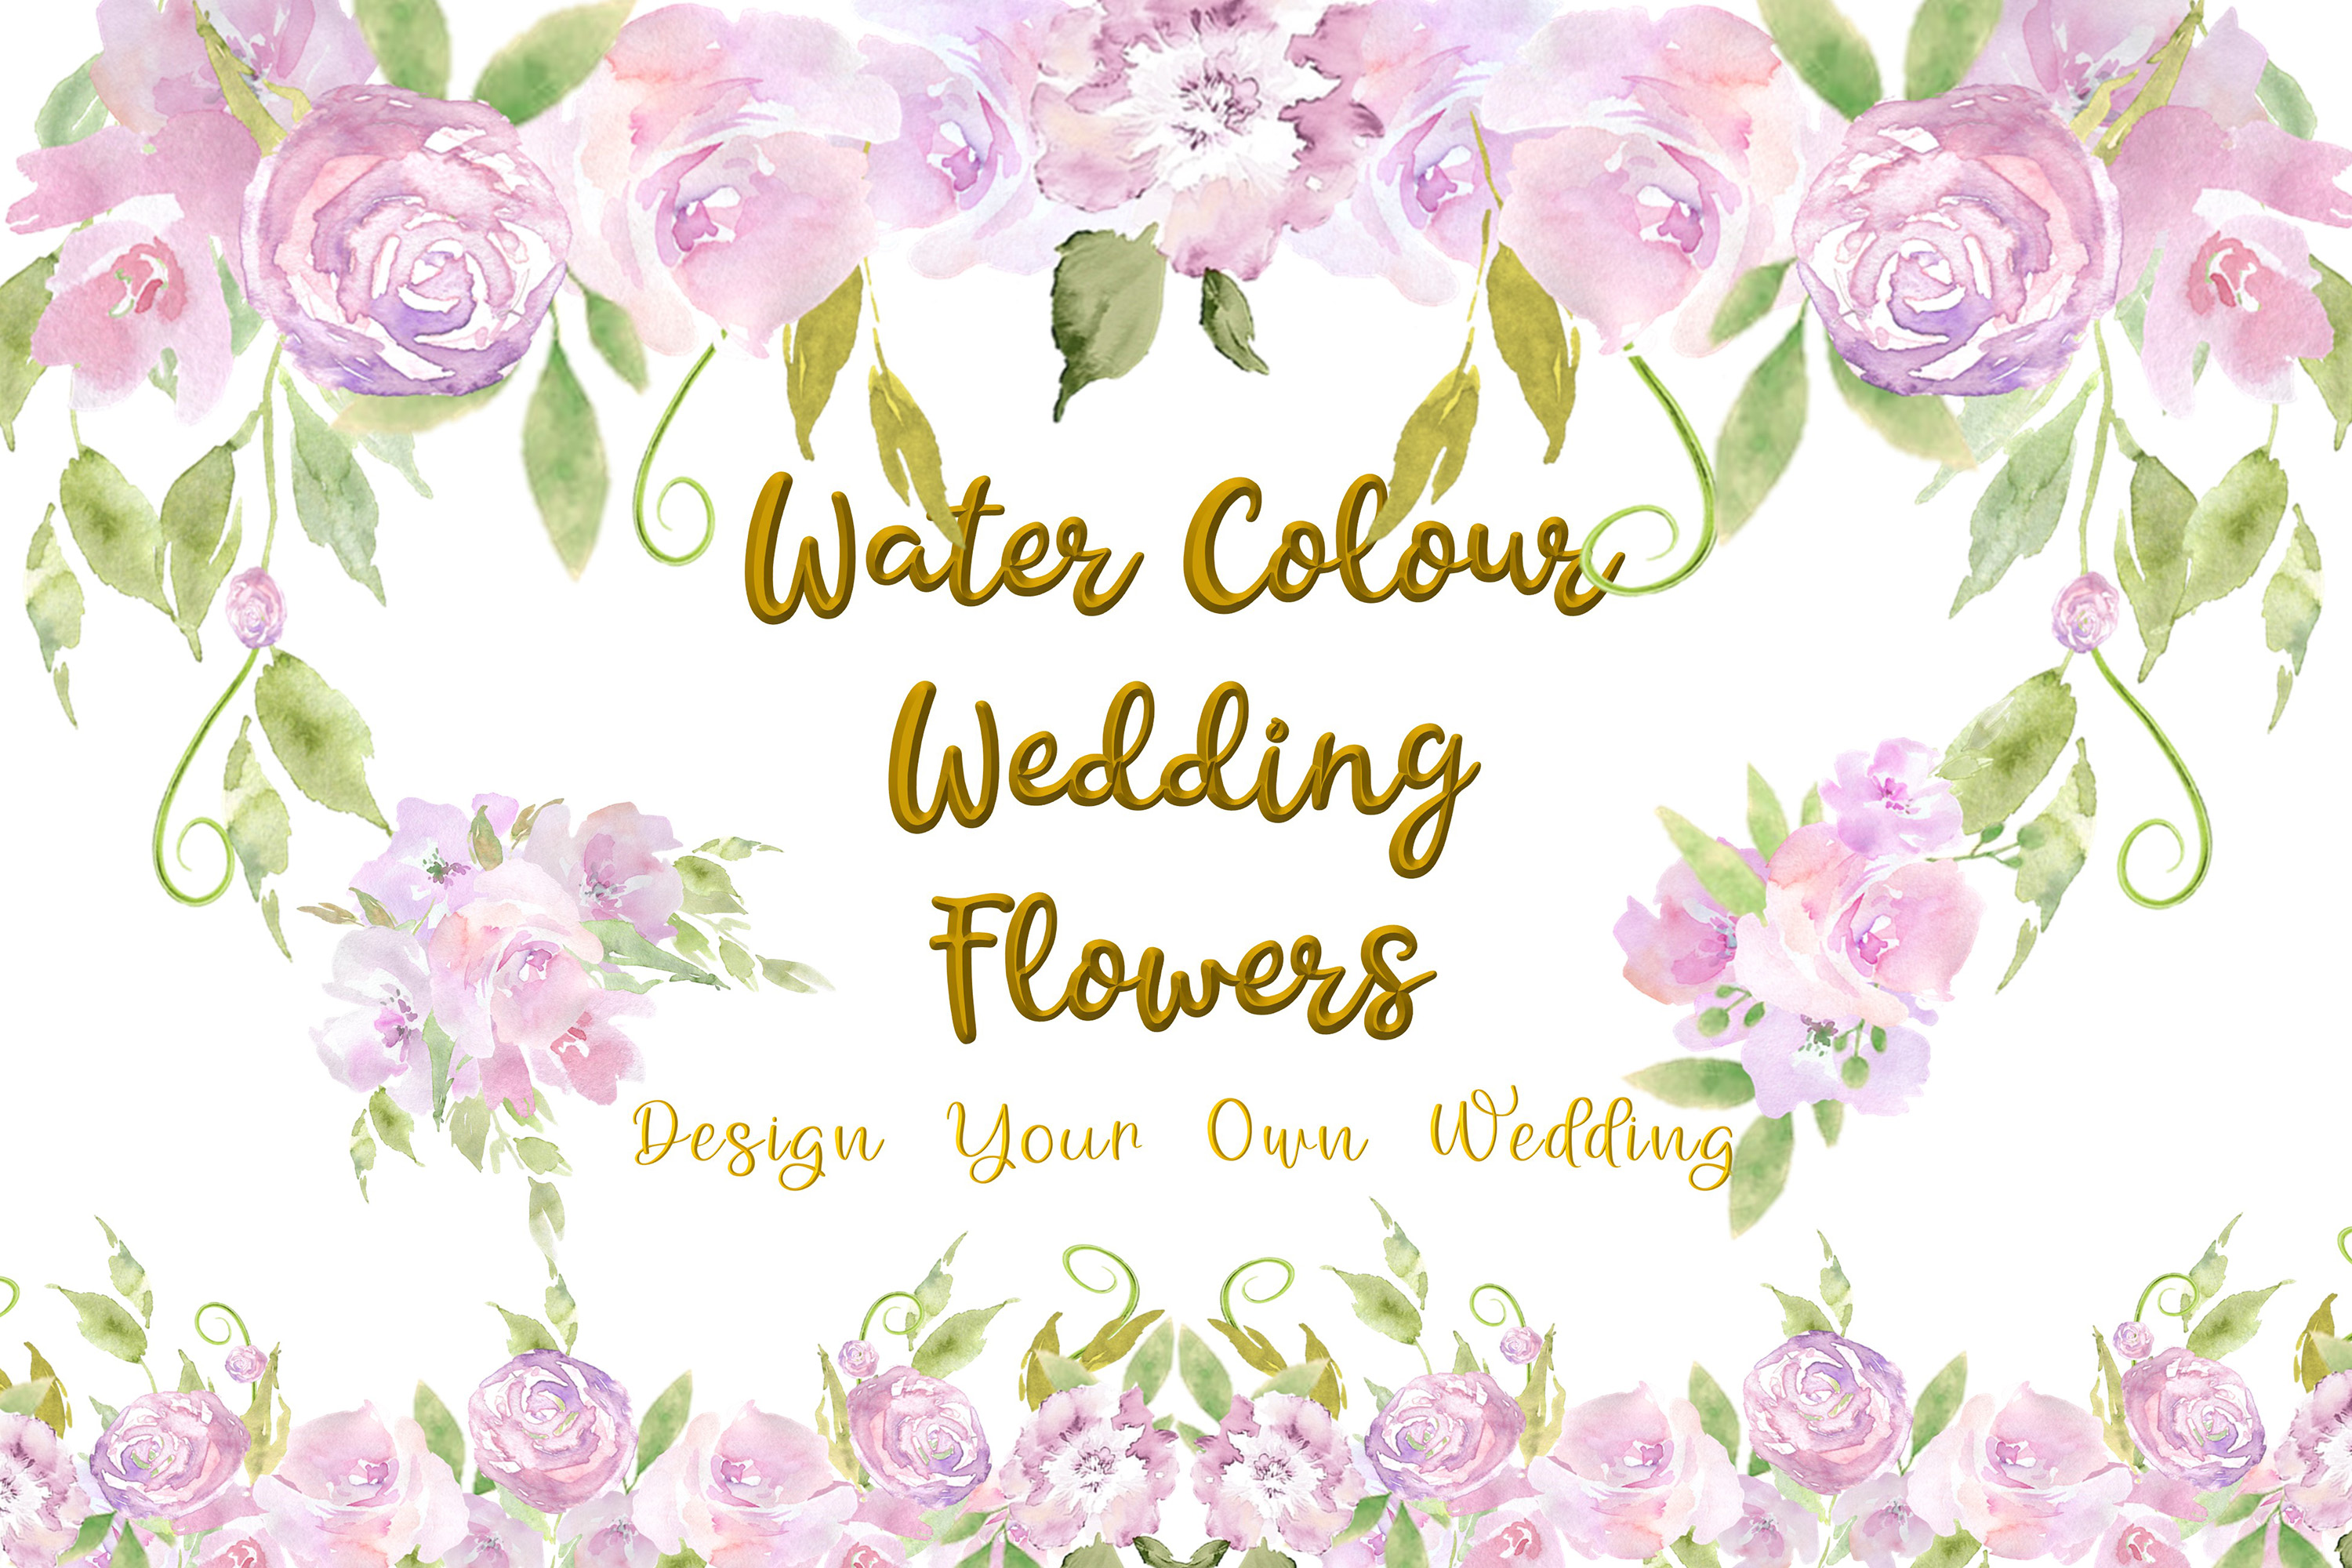 Water colour Wedding Flowers CLipart Kit Commercial Use example image 1